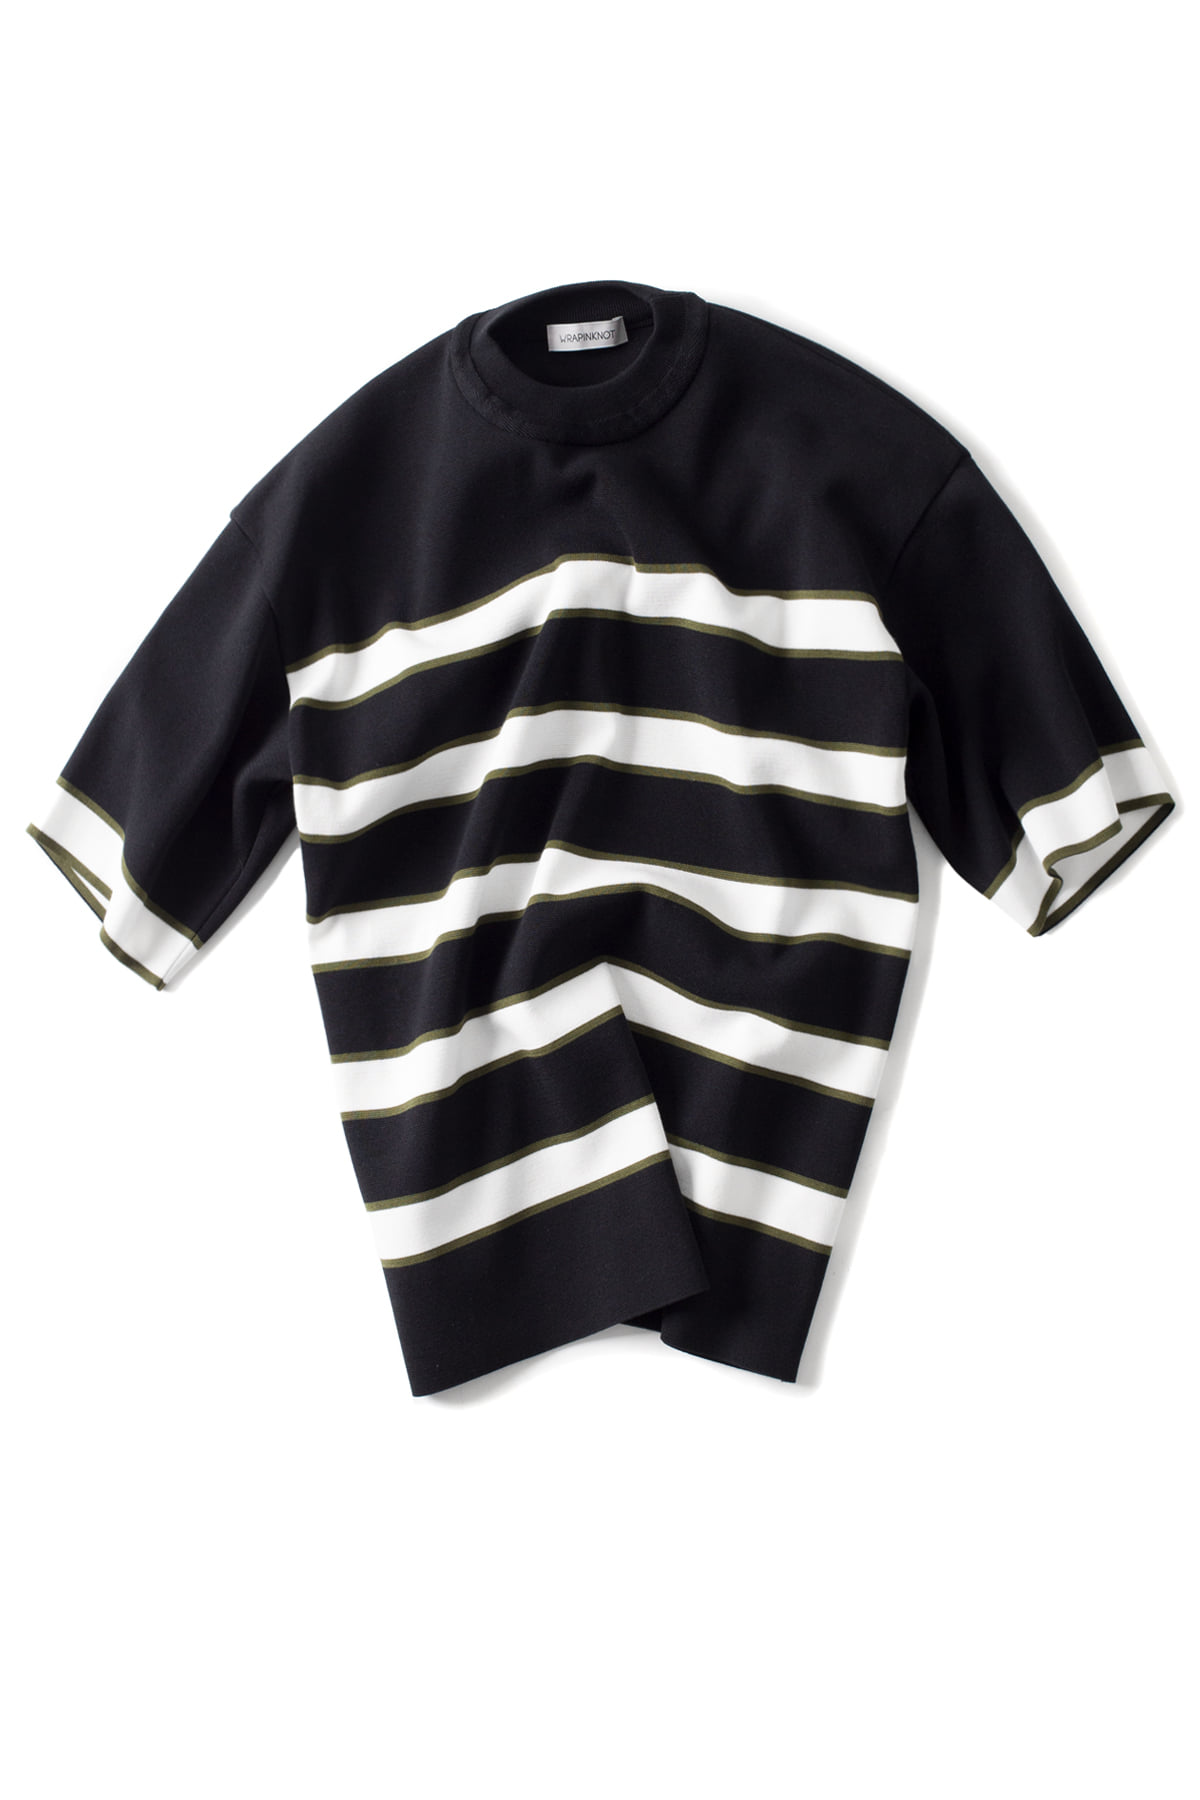 WRAPINKNOT : Border H/S Knit (Black)